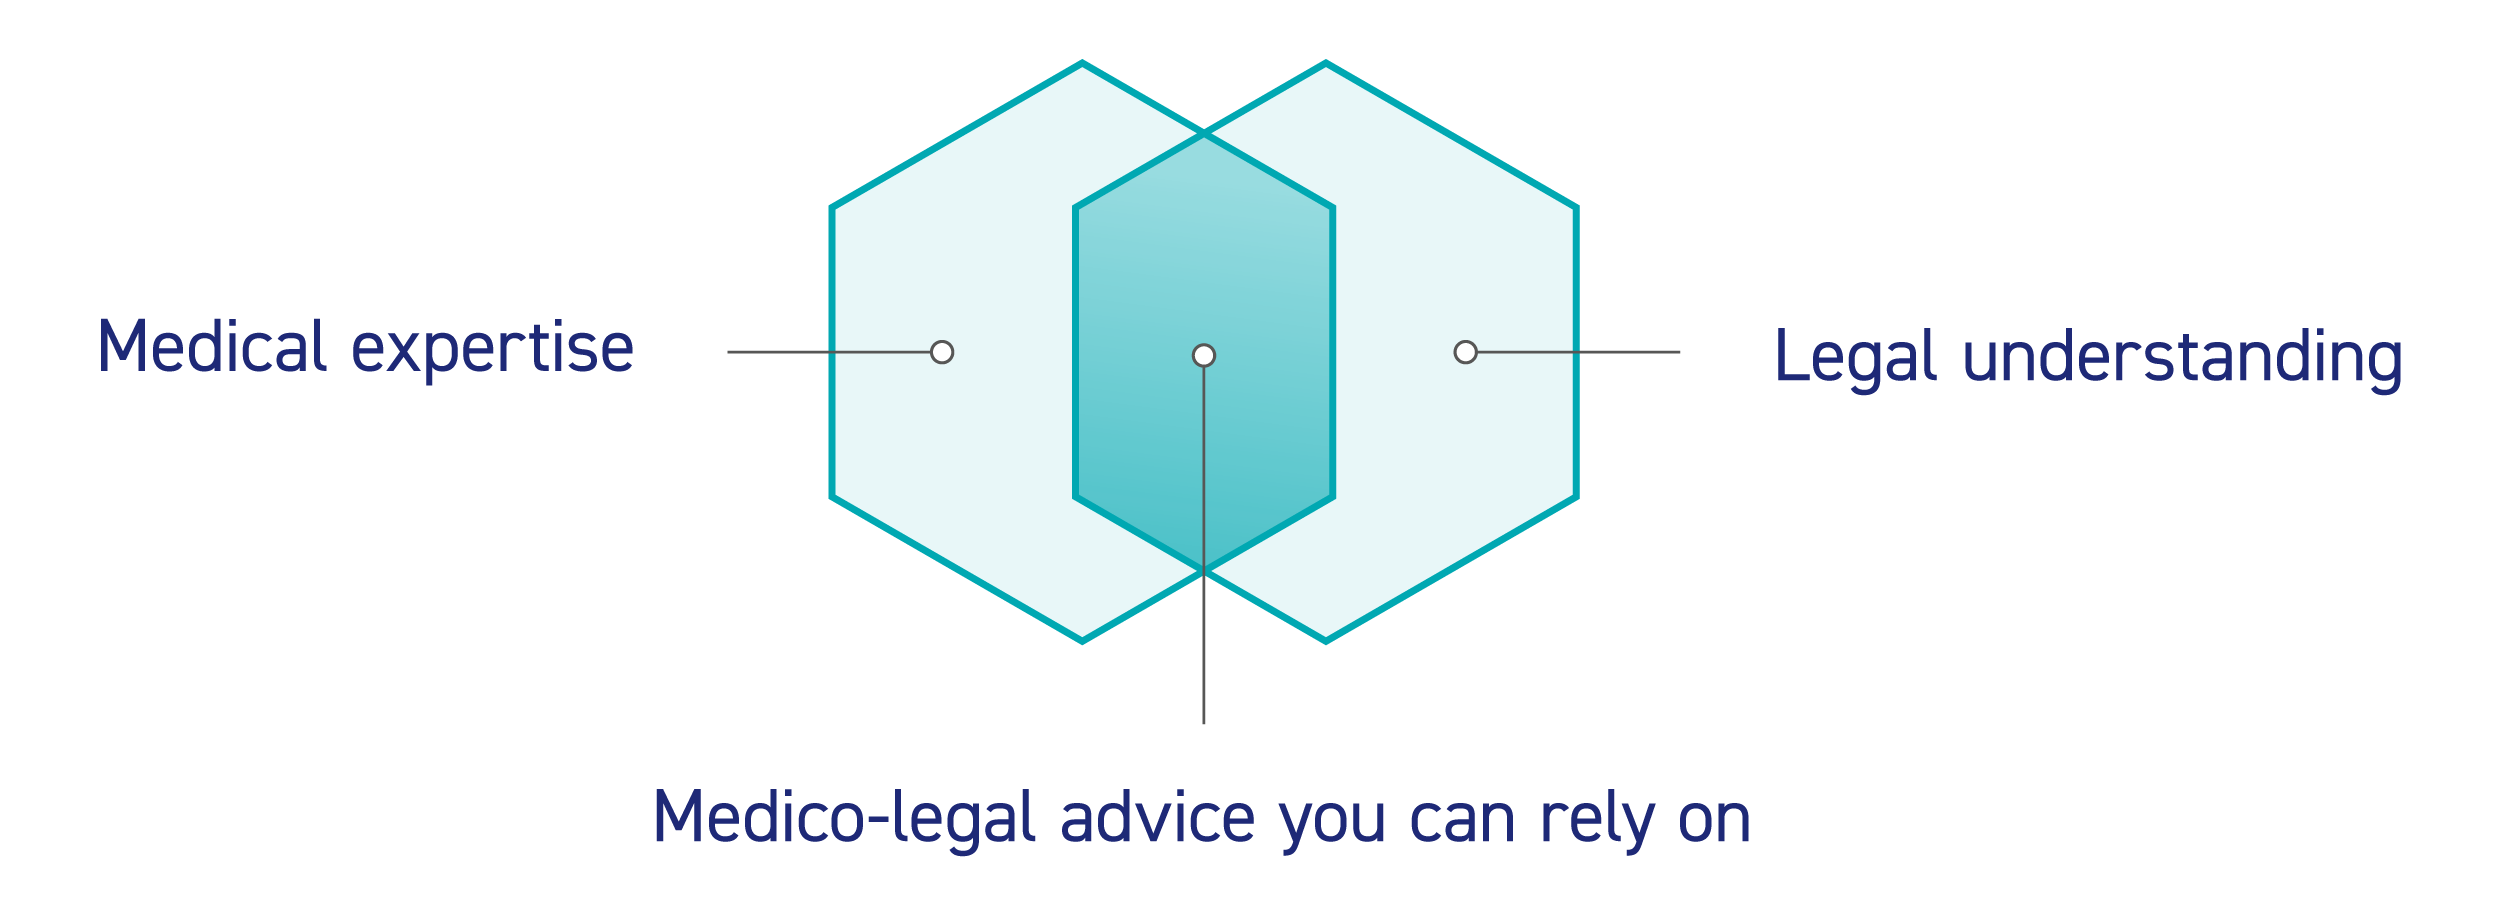 Medico-Legal-advice-you-can-rely-on_McCollum-Consultants.png